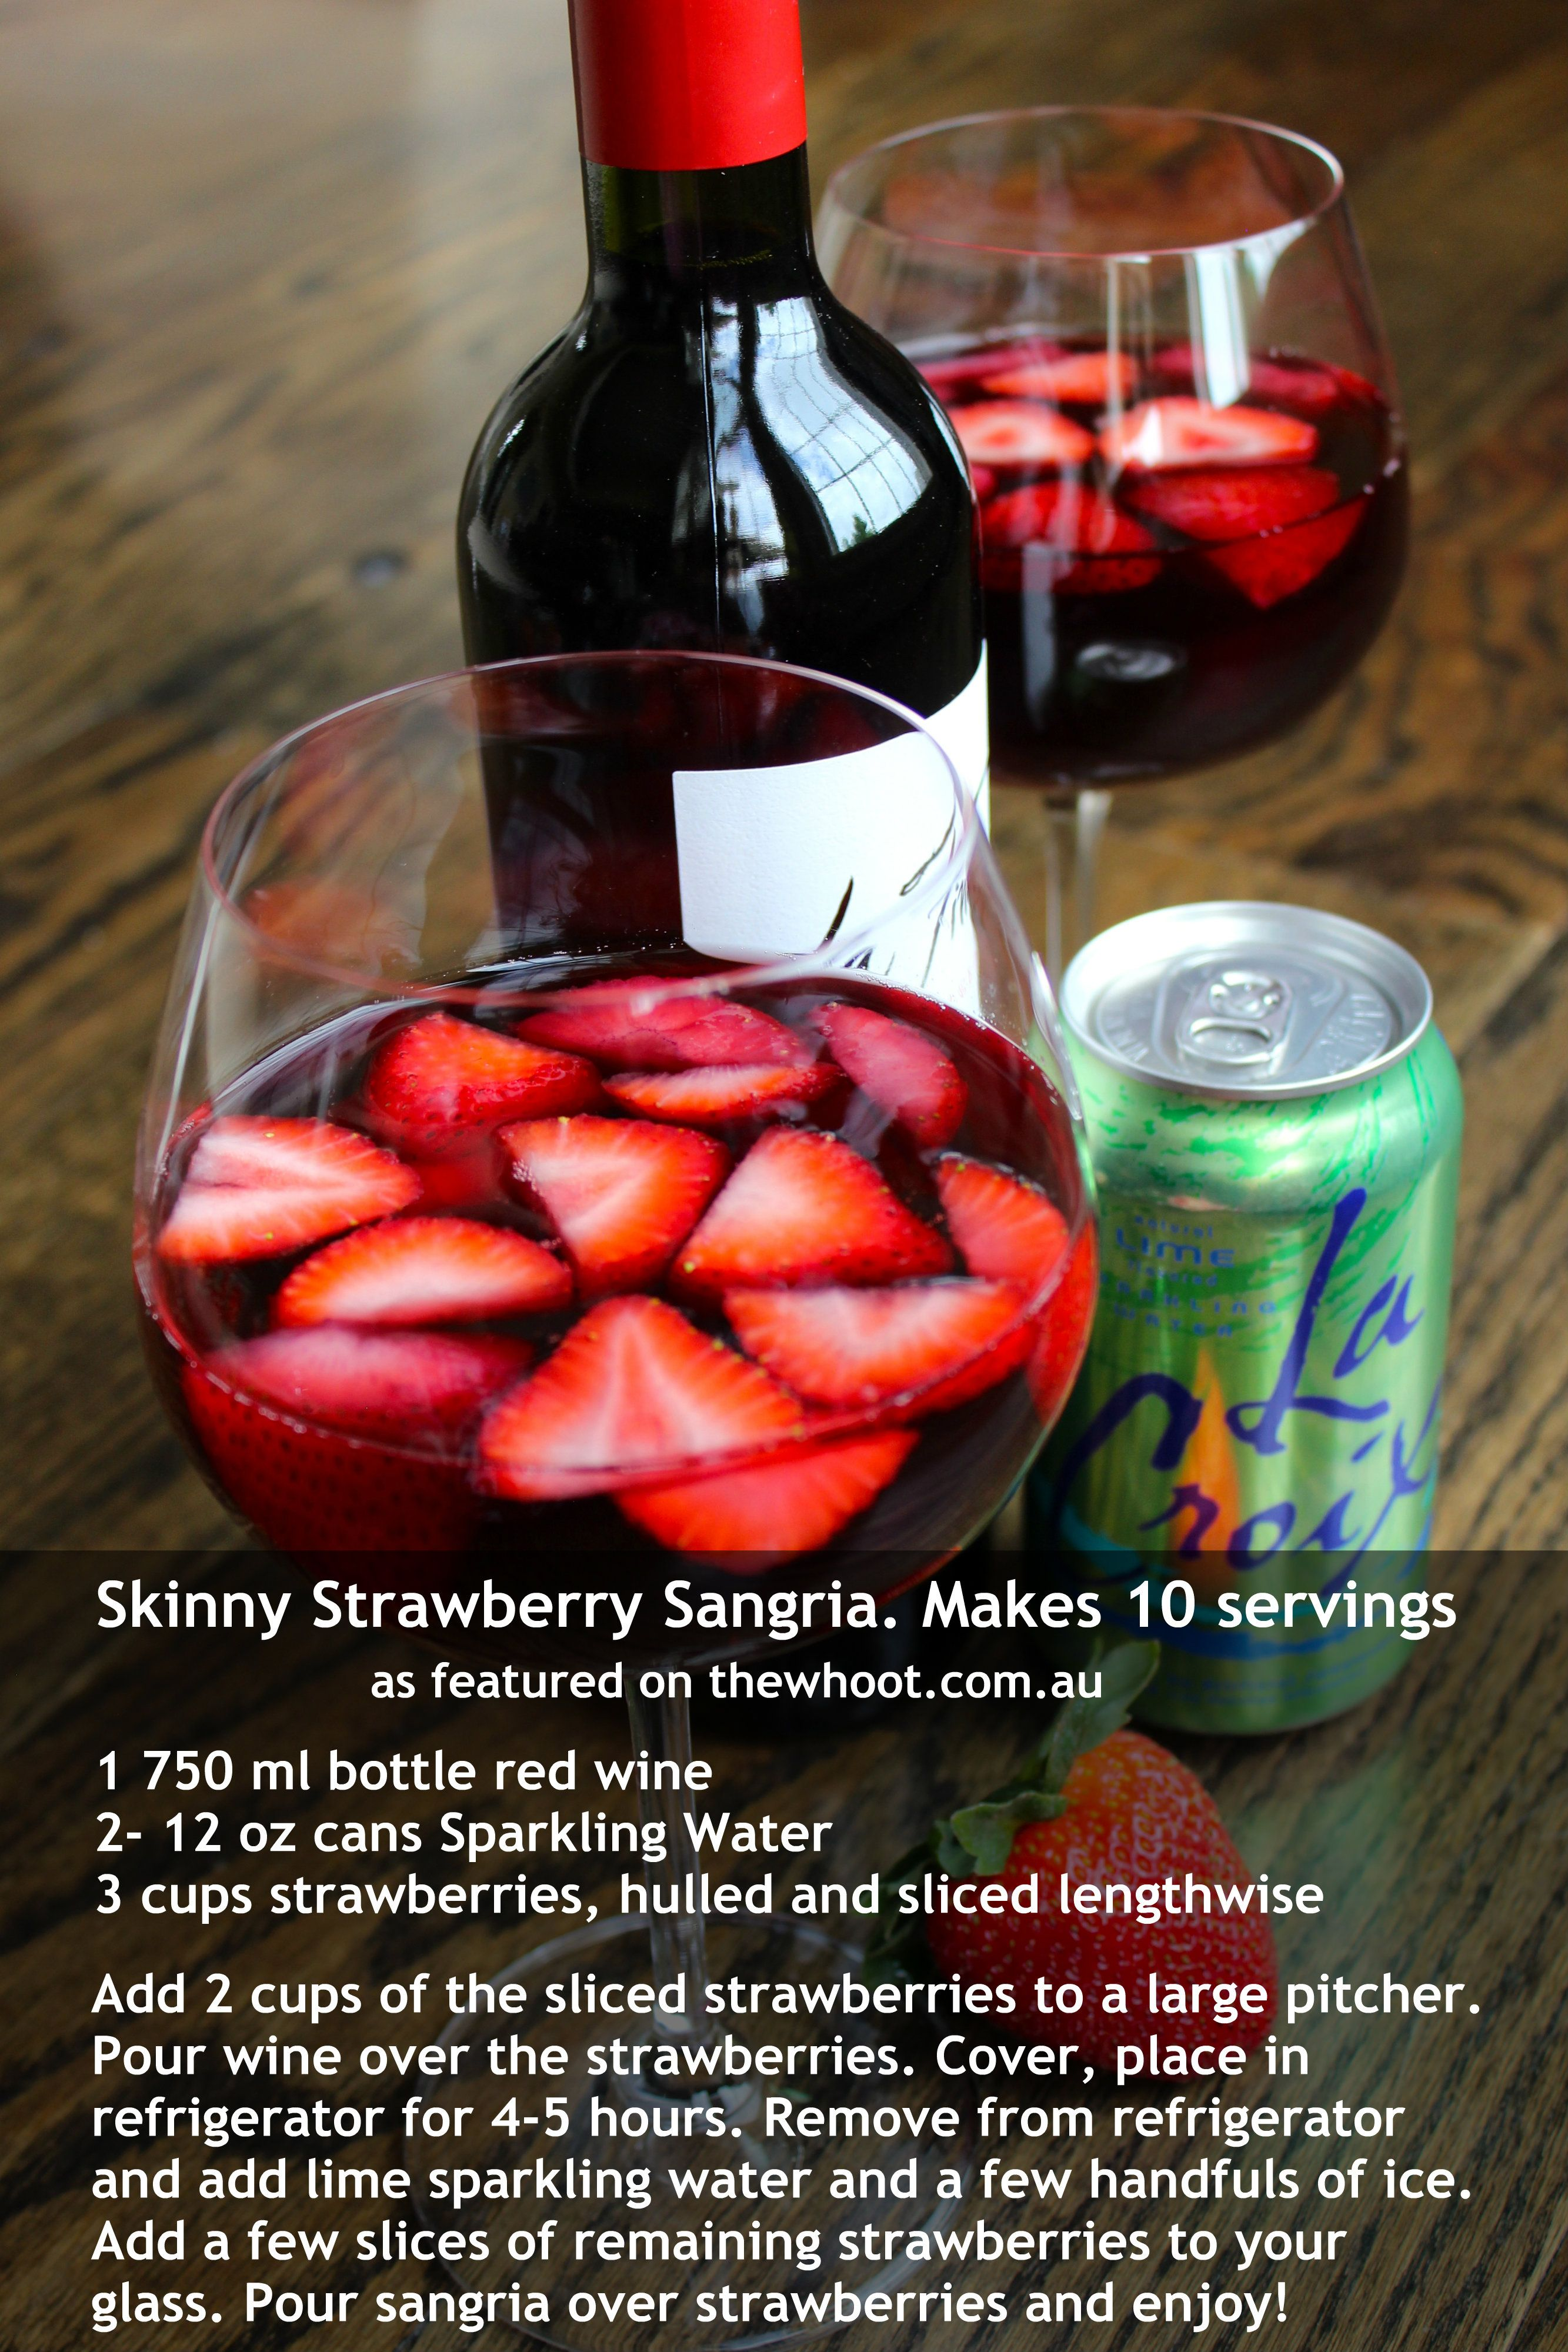 Strawberry Sangria Jpg 2 666 3 999 Pixels Strawberry Sangria Fun Drinks Skinny Sangria